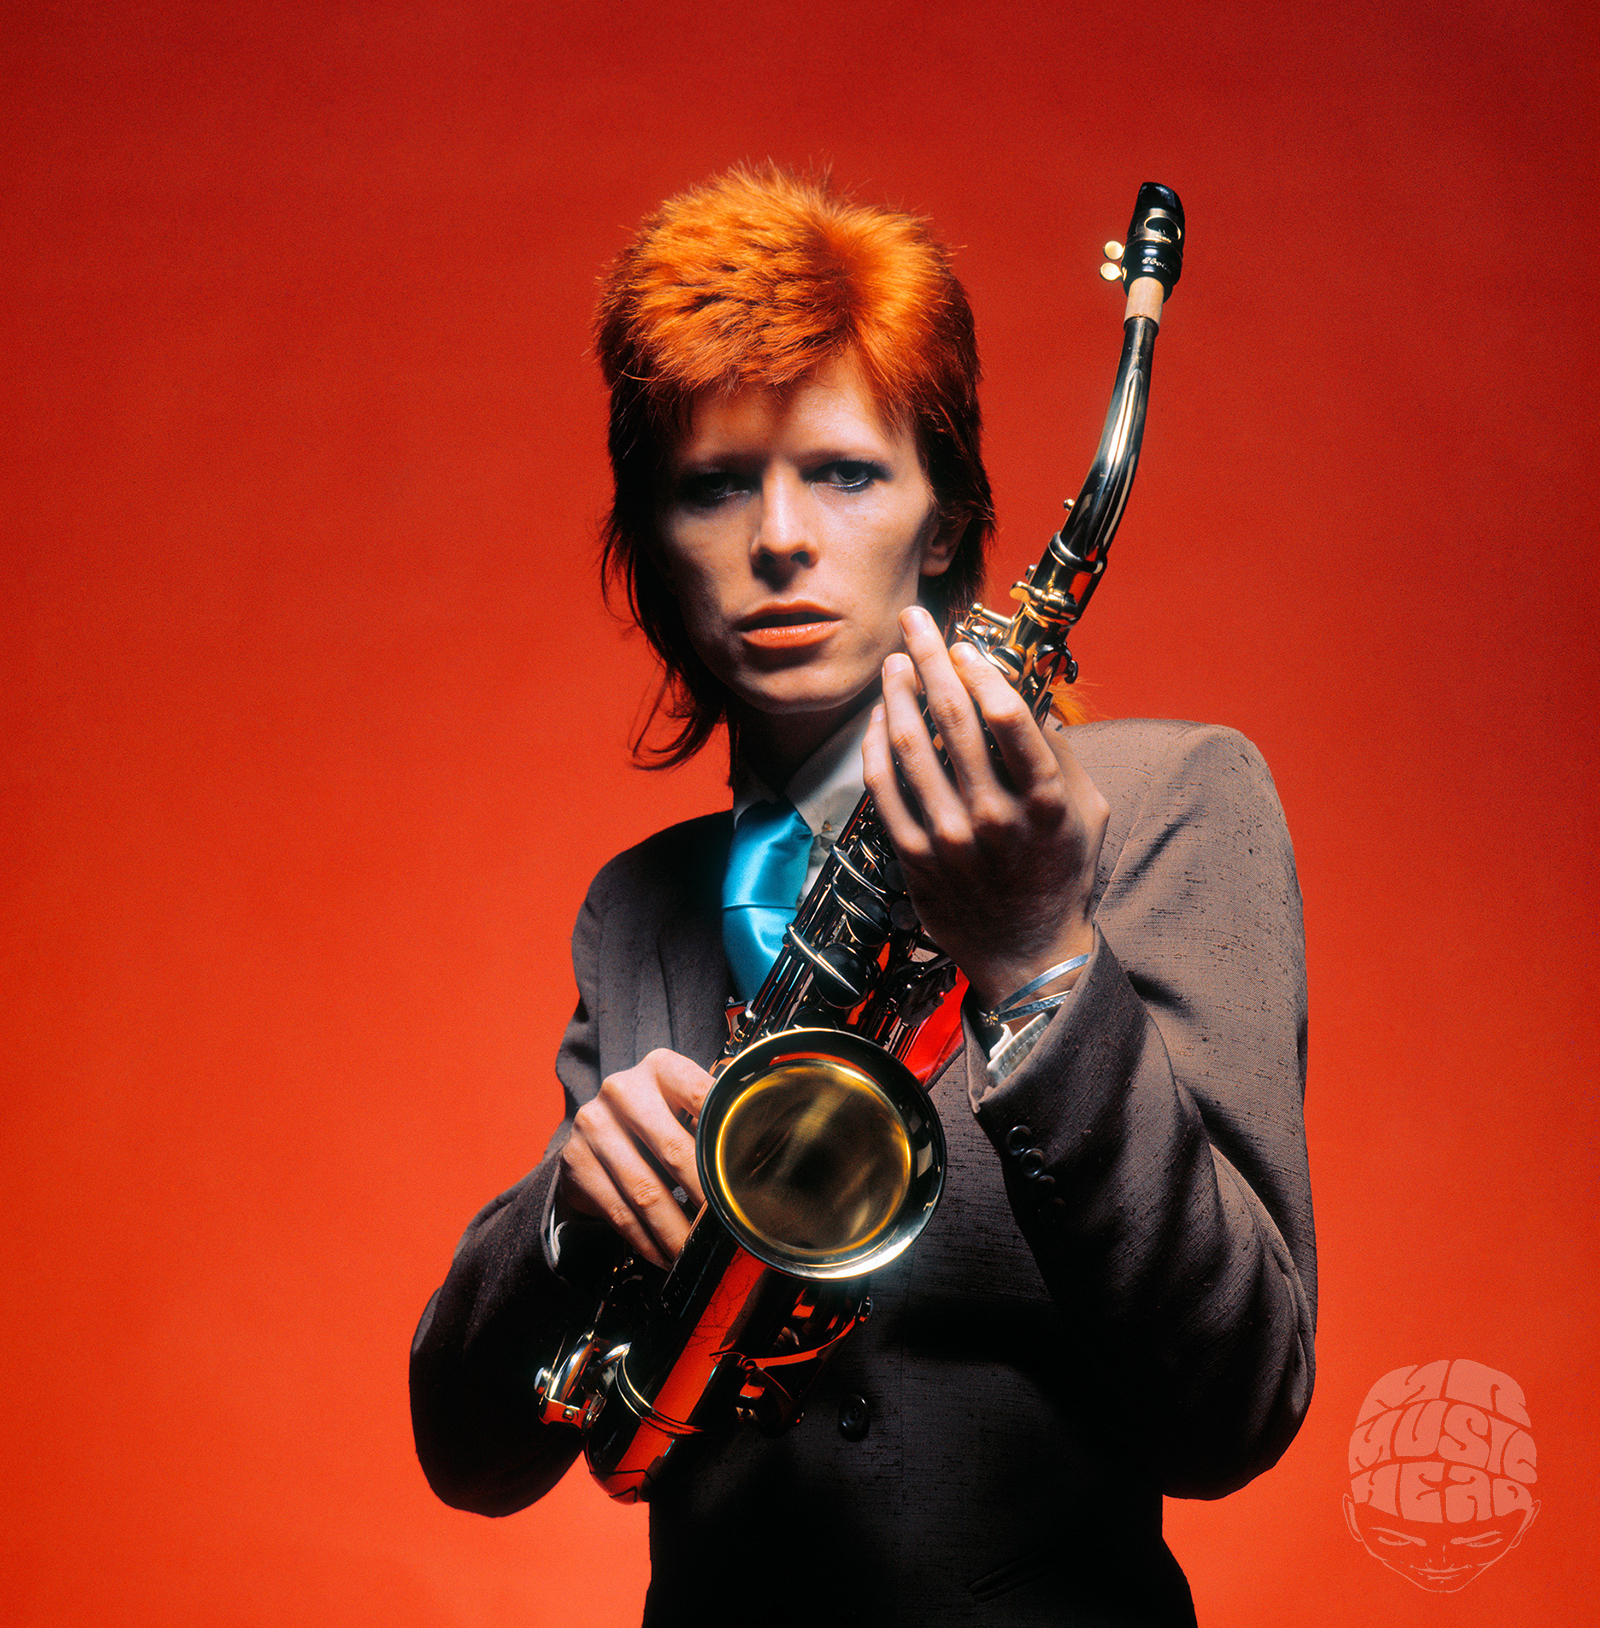 mick rock_david bowie saxophone.jpg